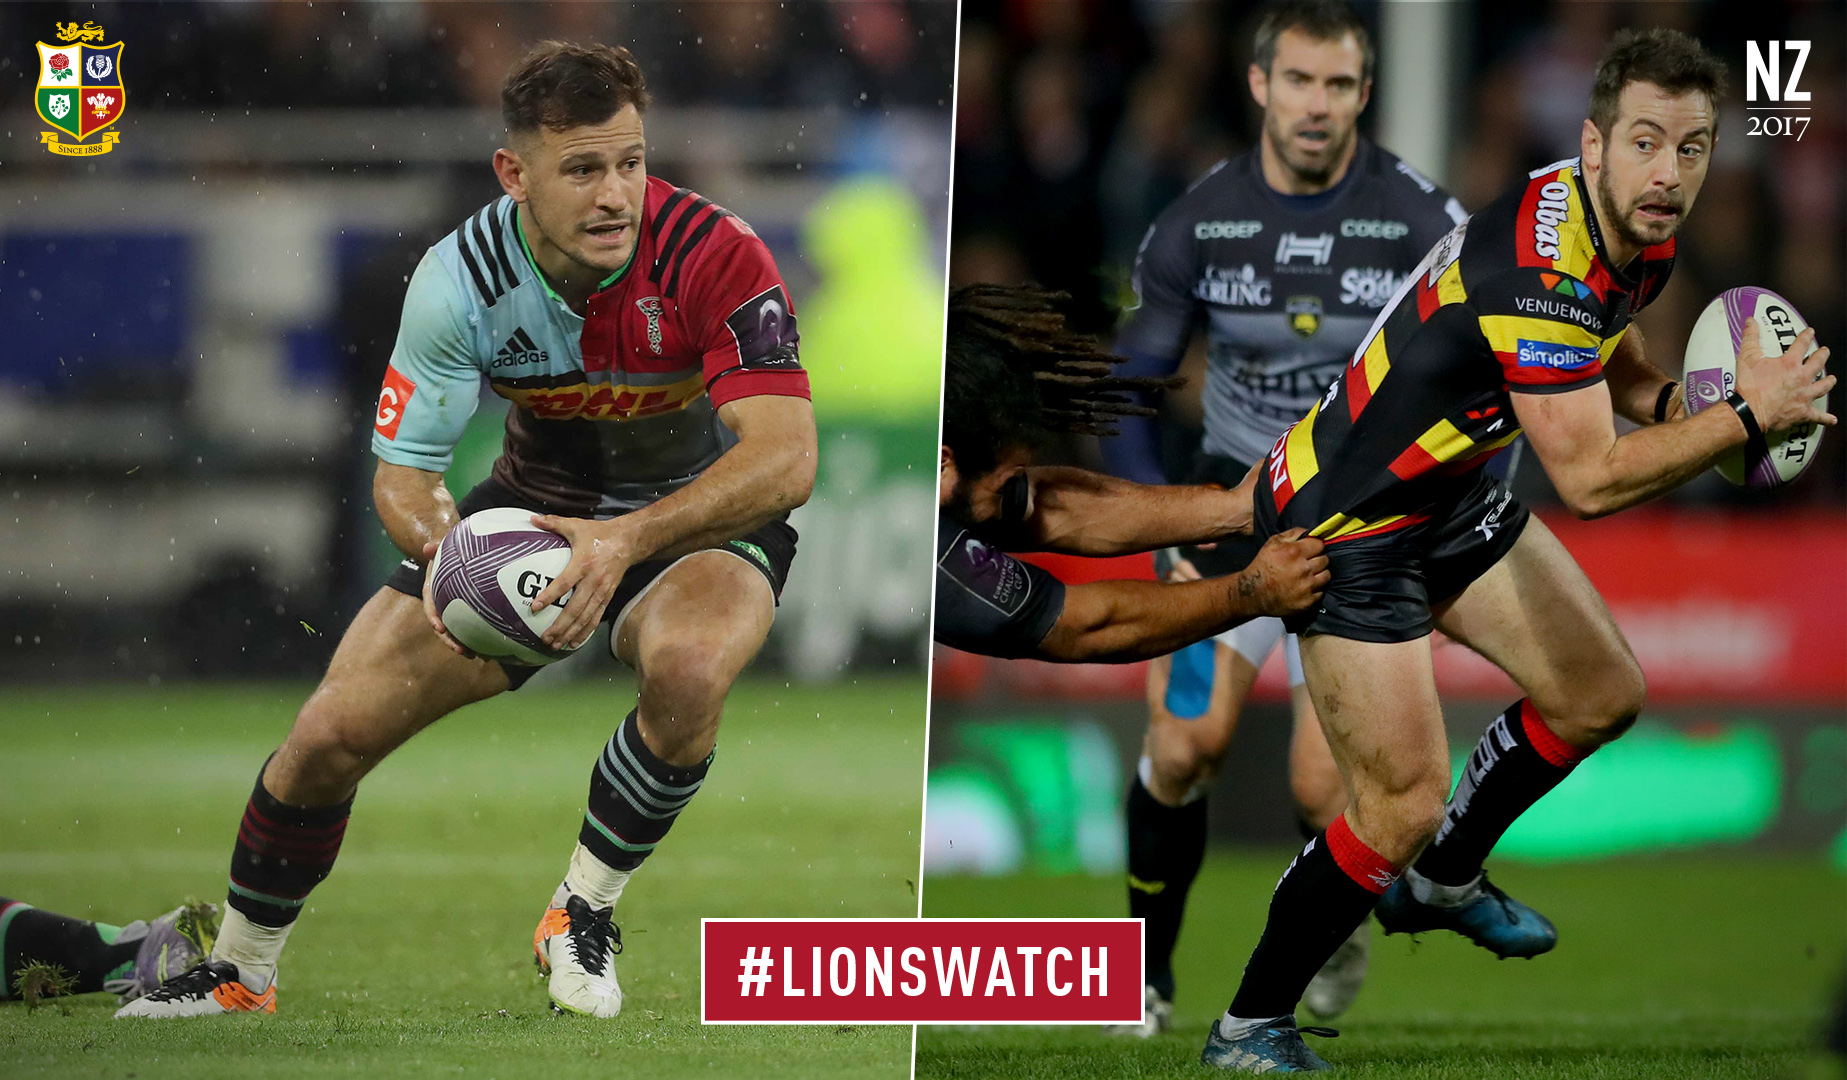 LIONSWATCH: It's Laidlaw against Care in the post-Christmas scrum-half battle